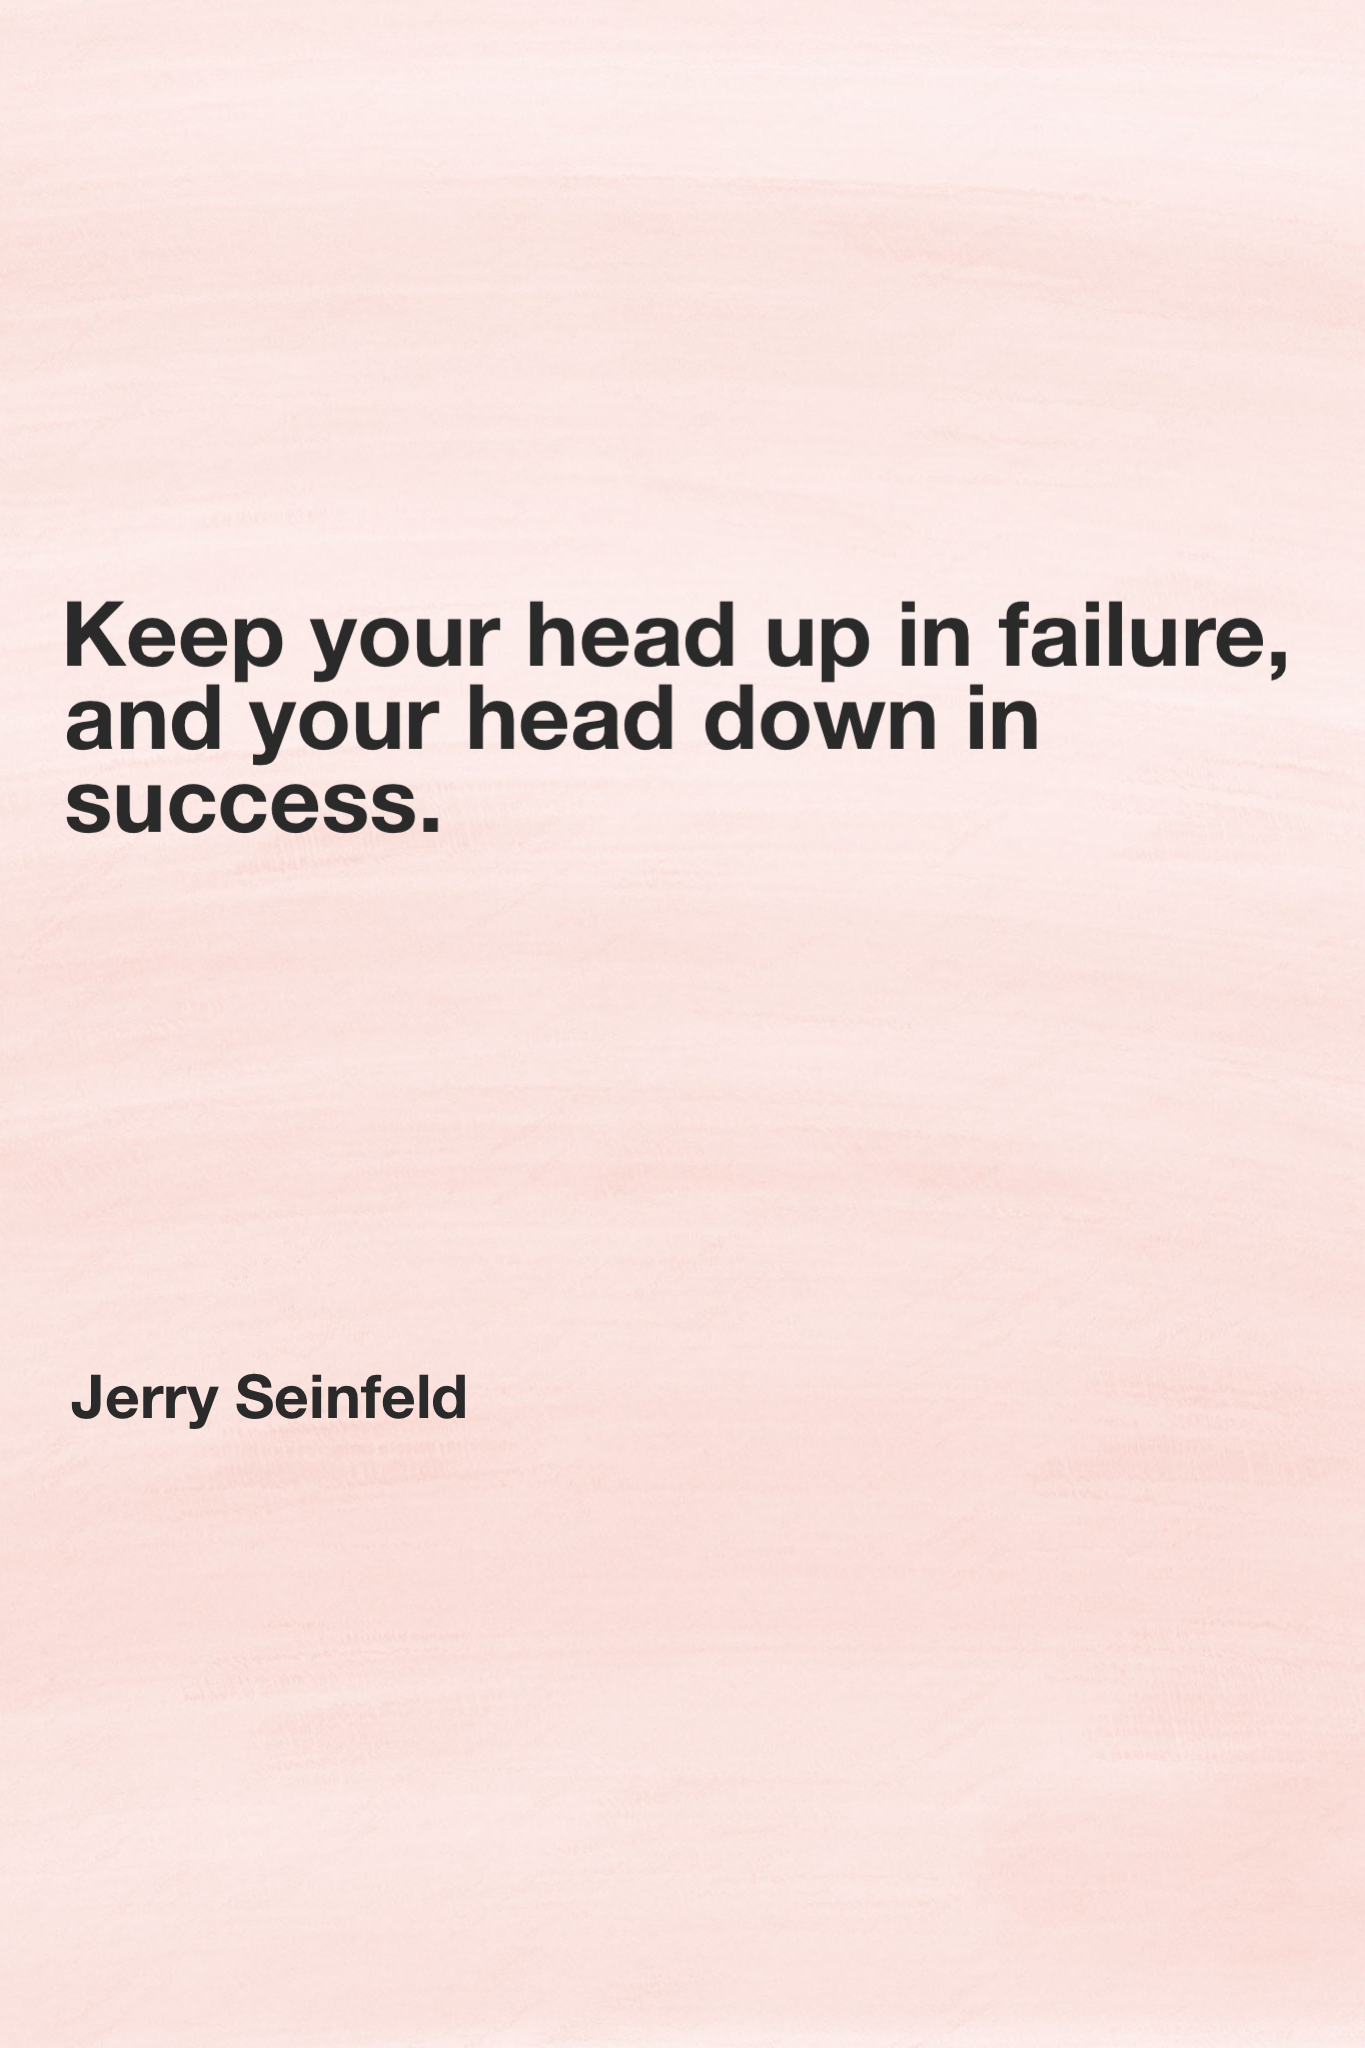 Head Down Quotes : quotes, Failure,, Success., Jerry, Seinfeld, Inspirational, Quotes,, Words, Favorite, Quotes